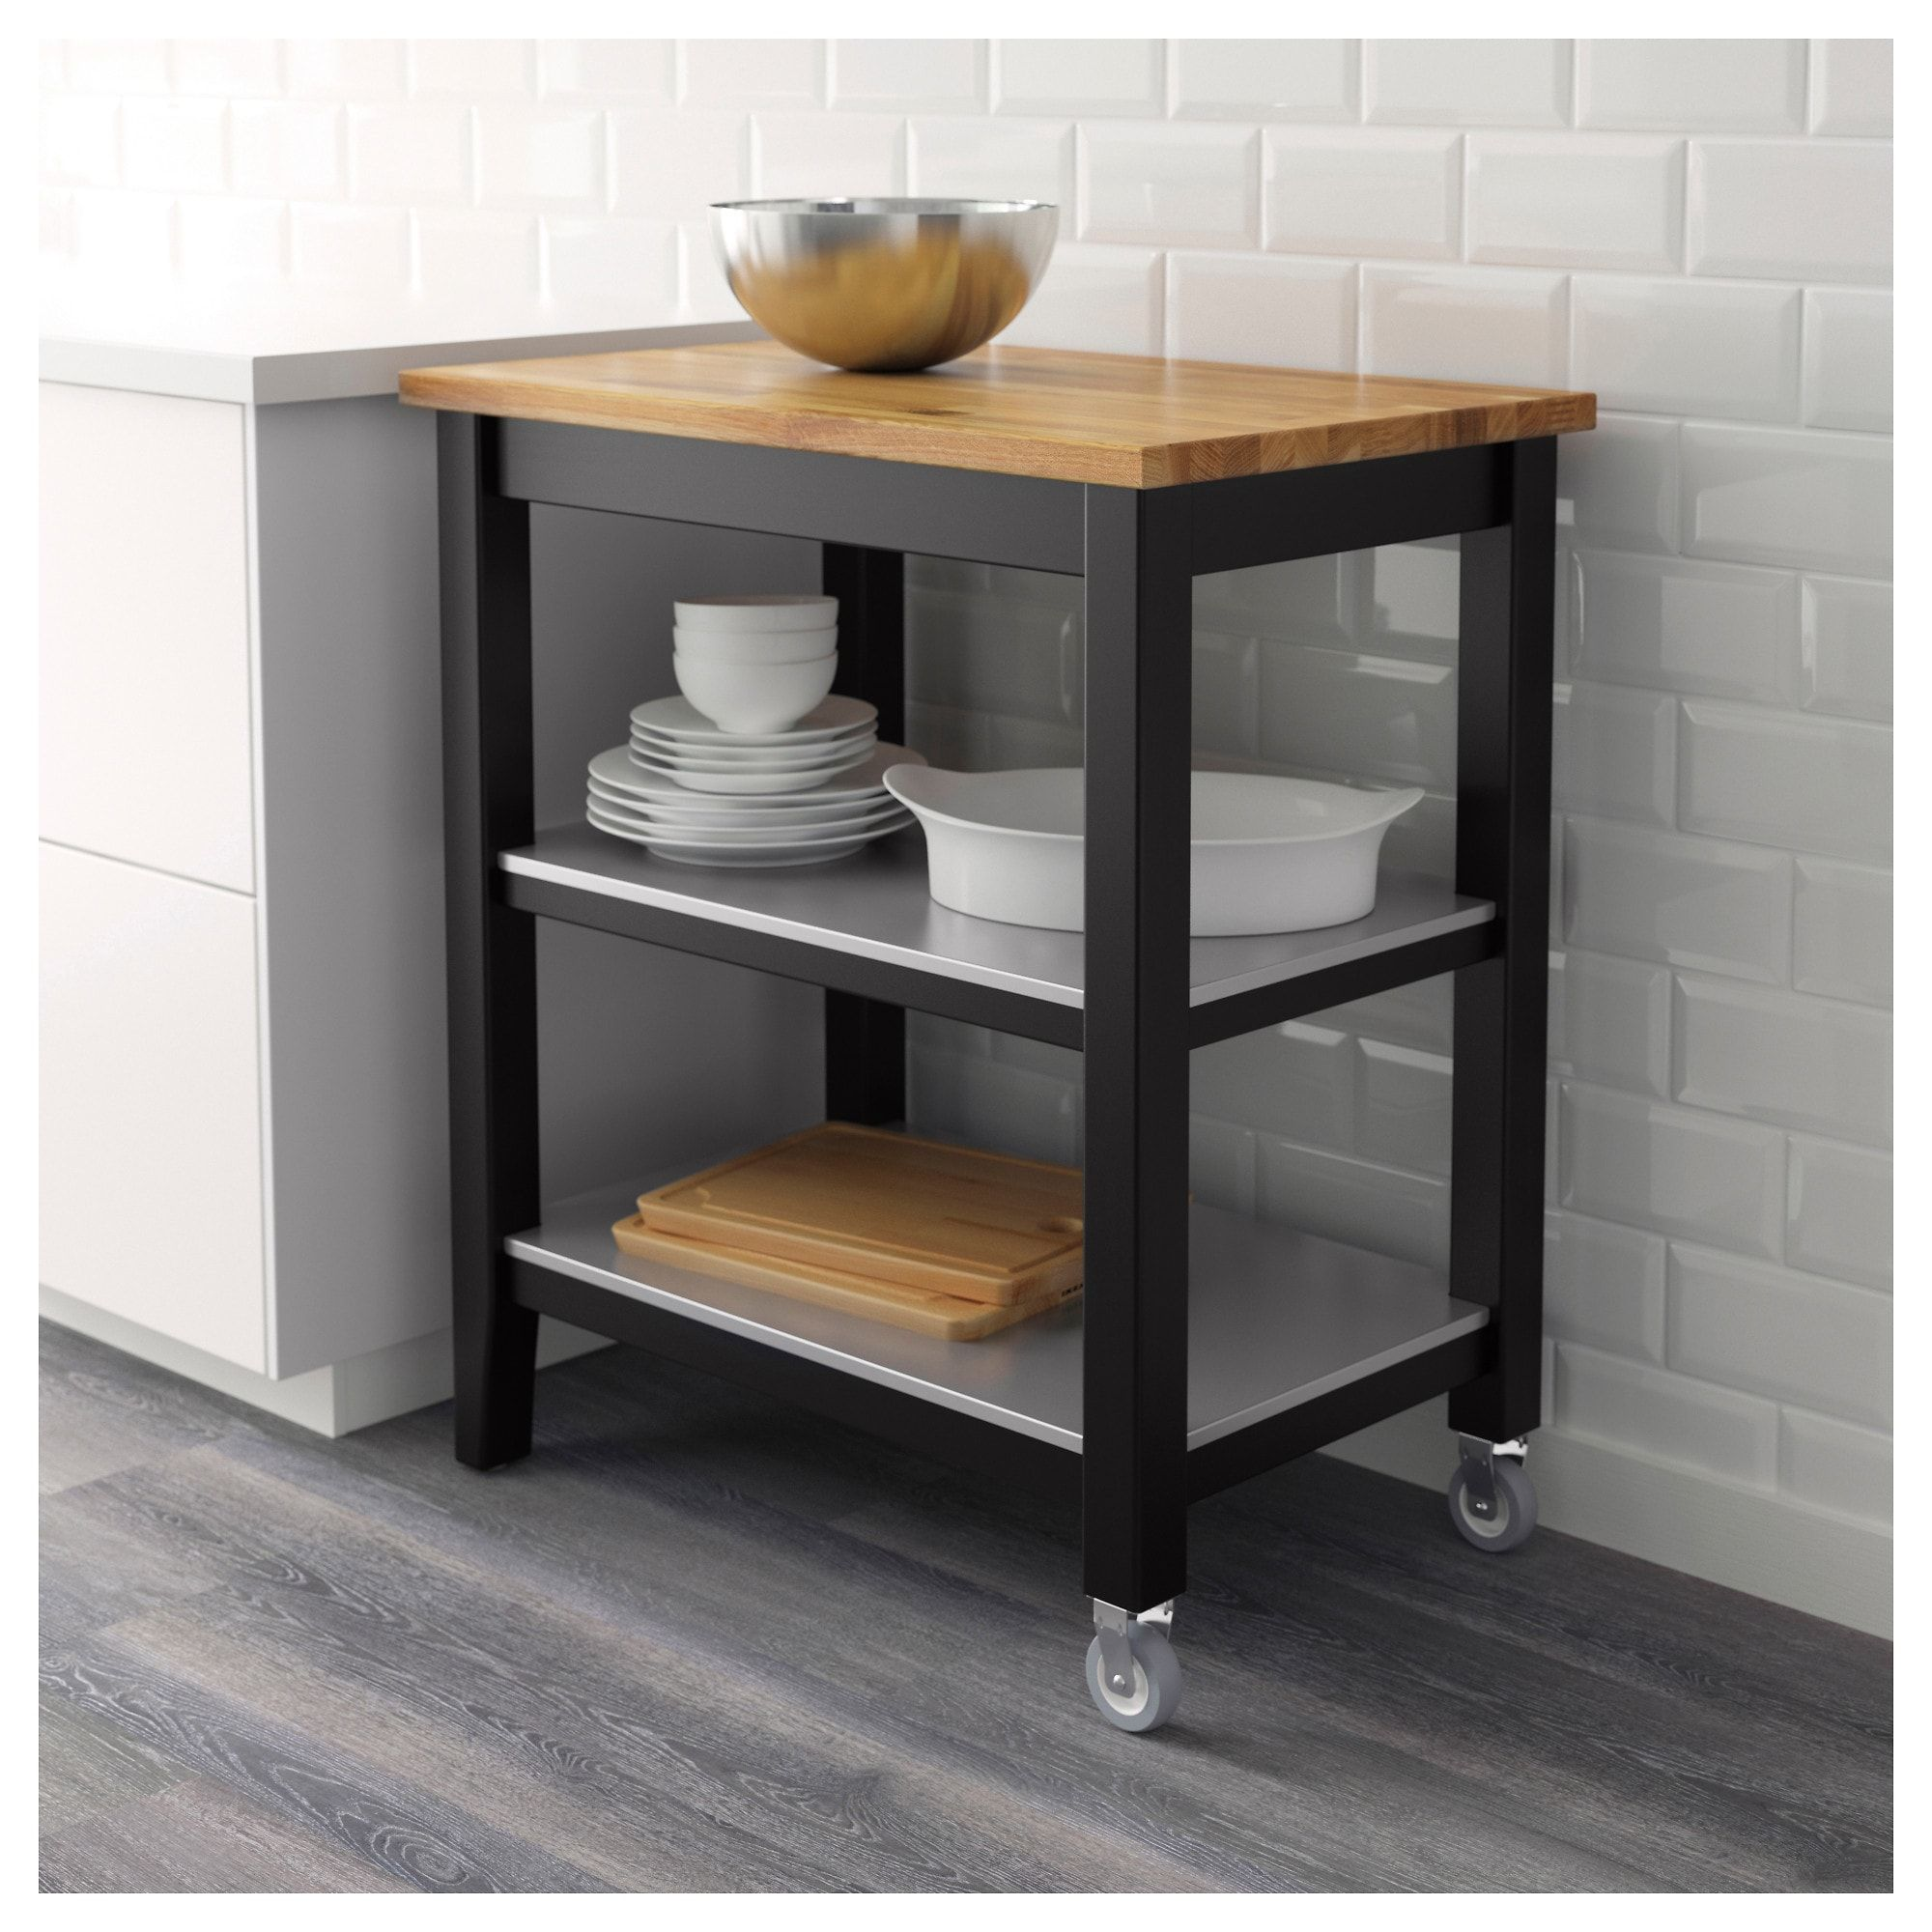 Ikea Stenstorp Kitchen Cart Black Brown Oak Products In 2019